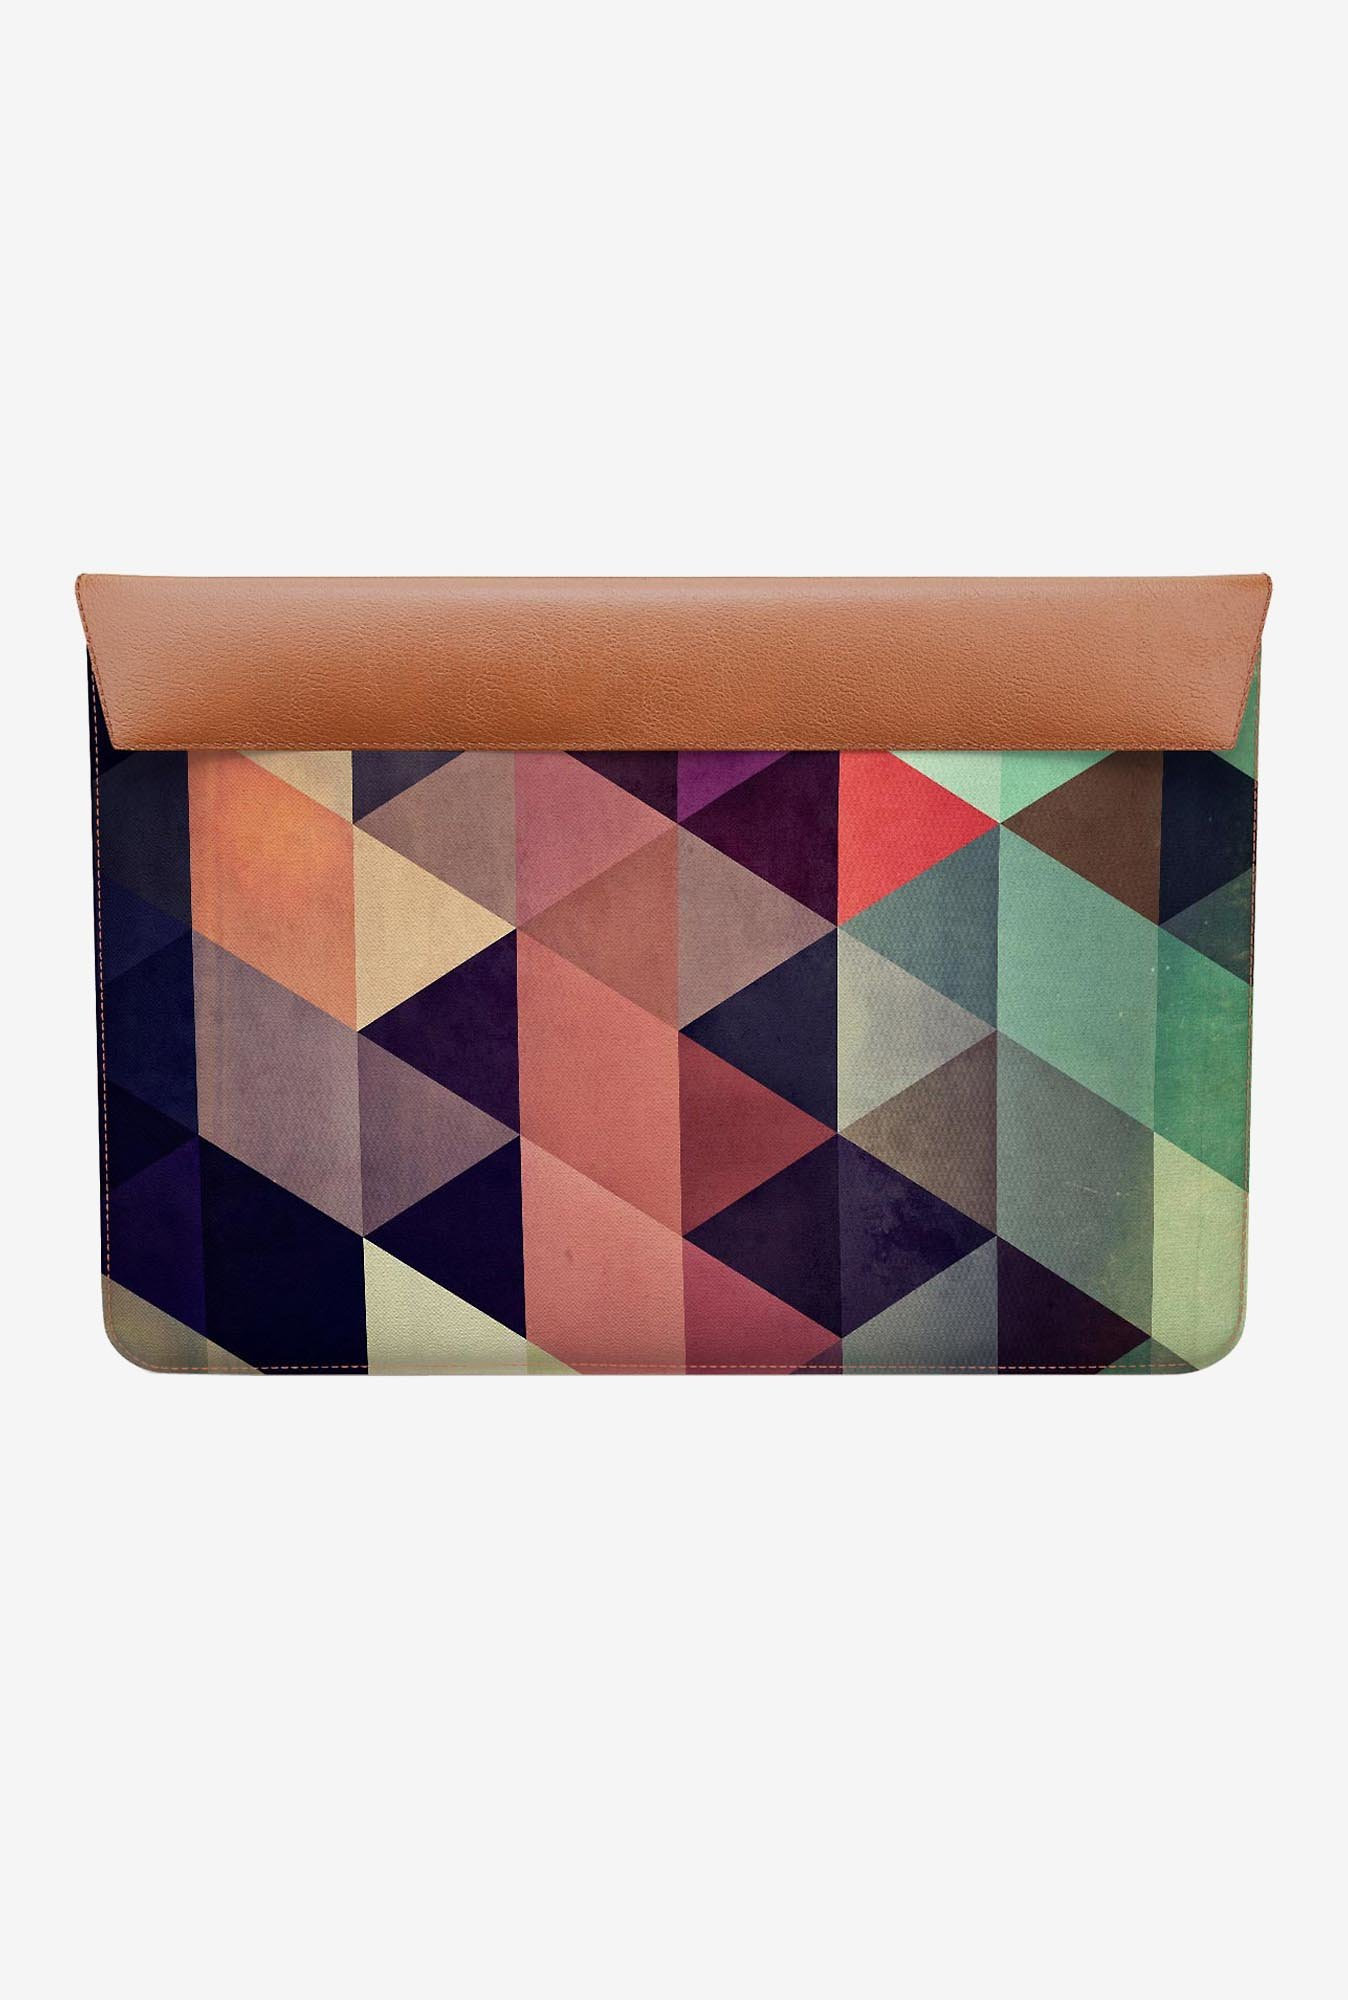 DailyObjects Tryypyzoyd Hrxtl MacBook Air 11 Envelope Sleeve